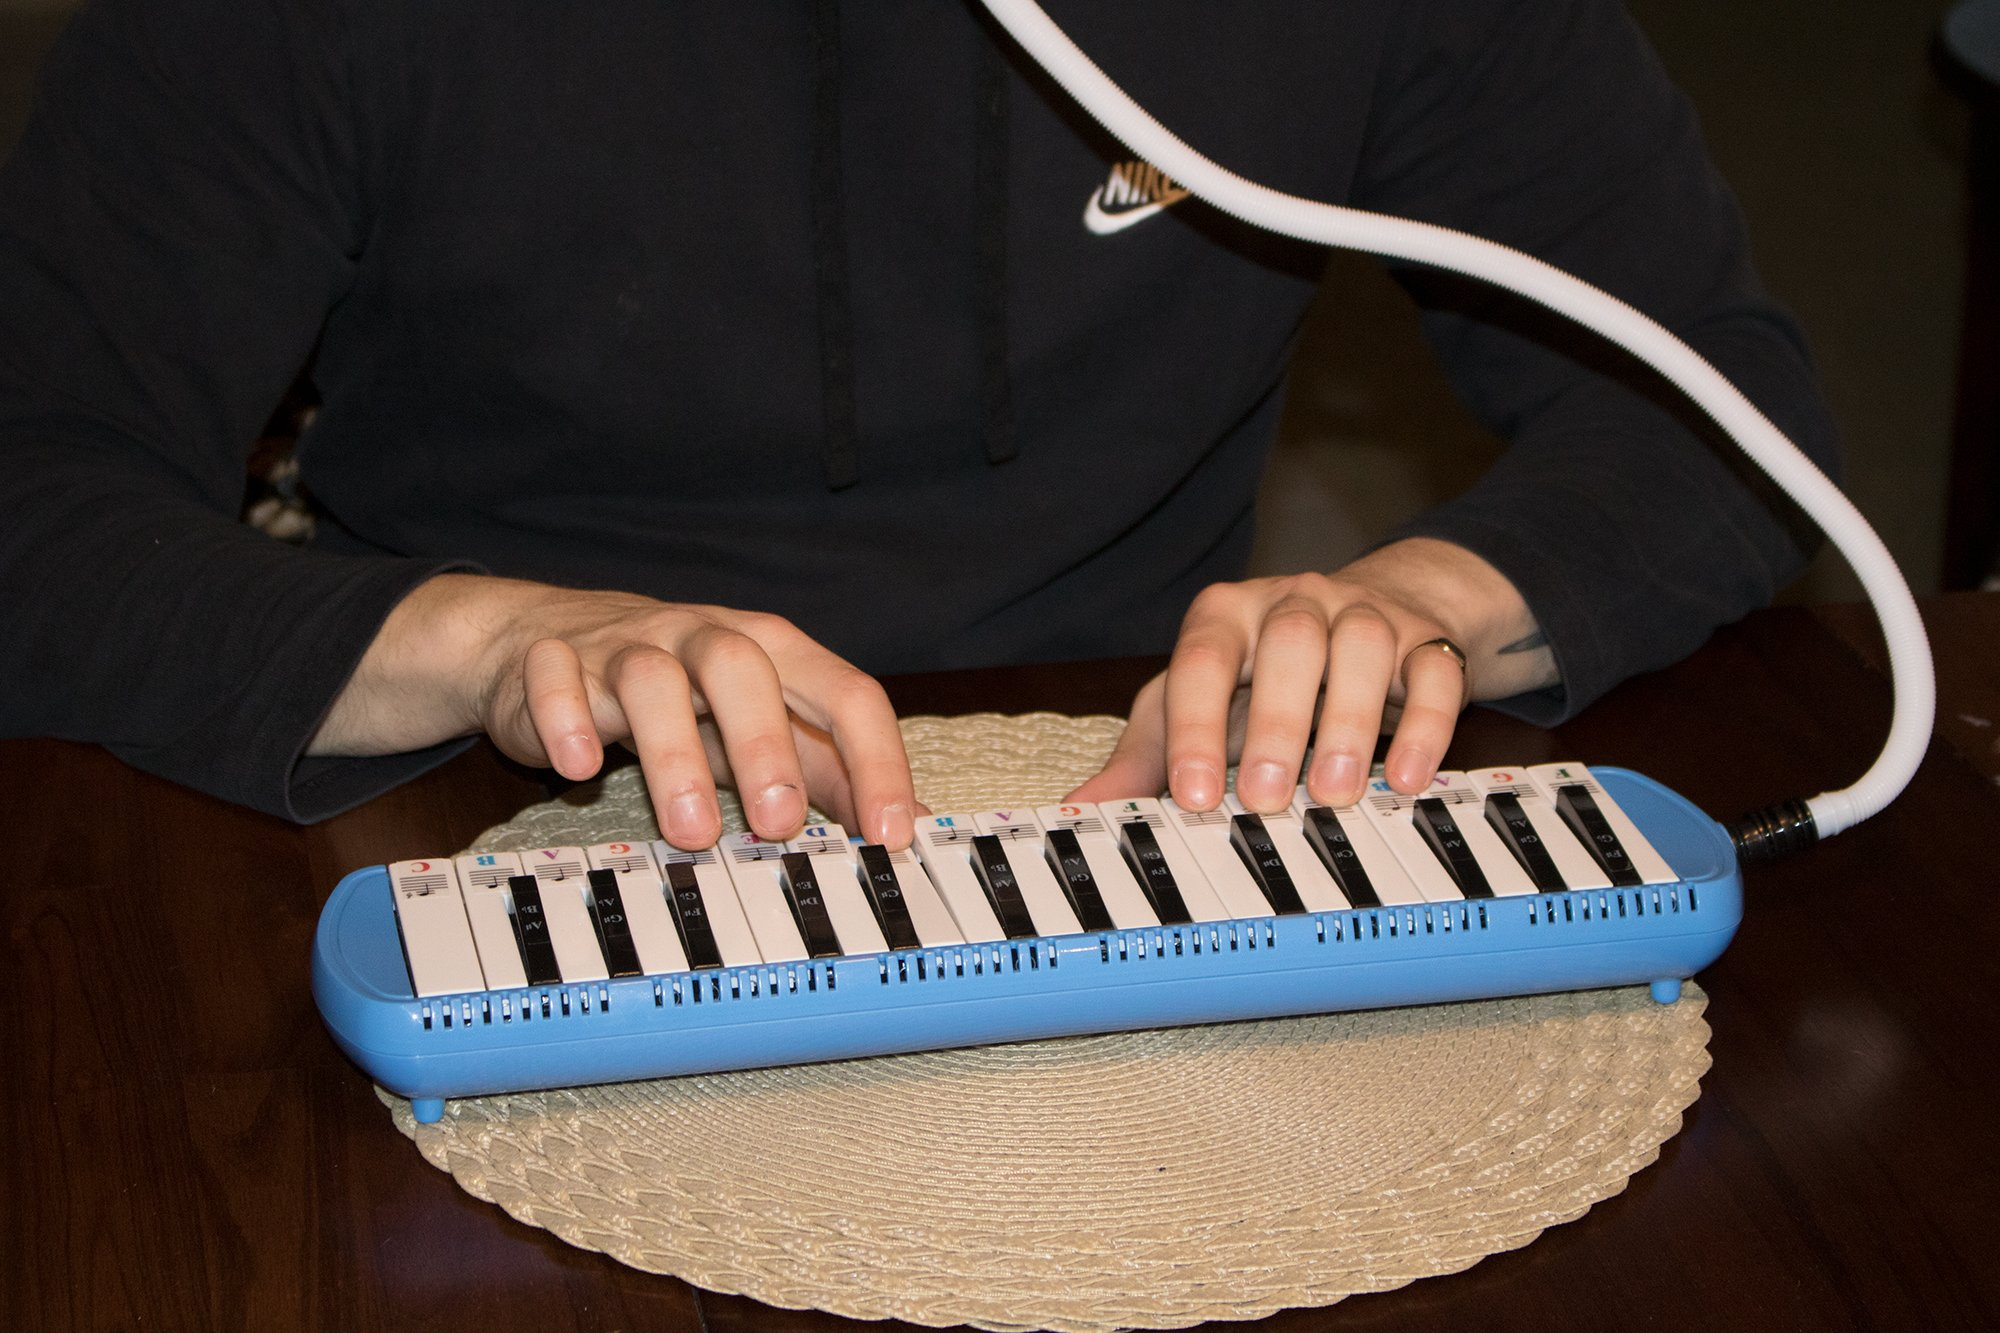 Melodica 32 Keys with Piano Stickers, Hard Cover Carrying Case, Mouthpiece, and Piano Ebook by QMG (Image #6)